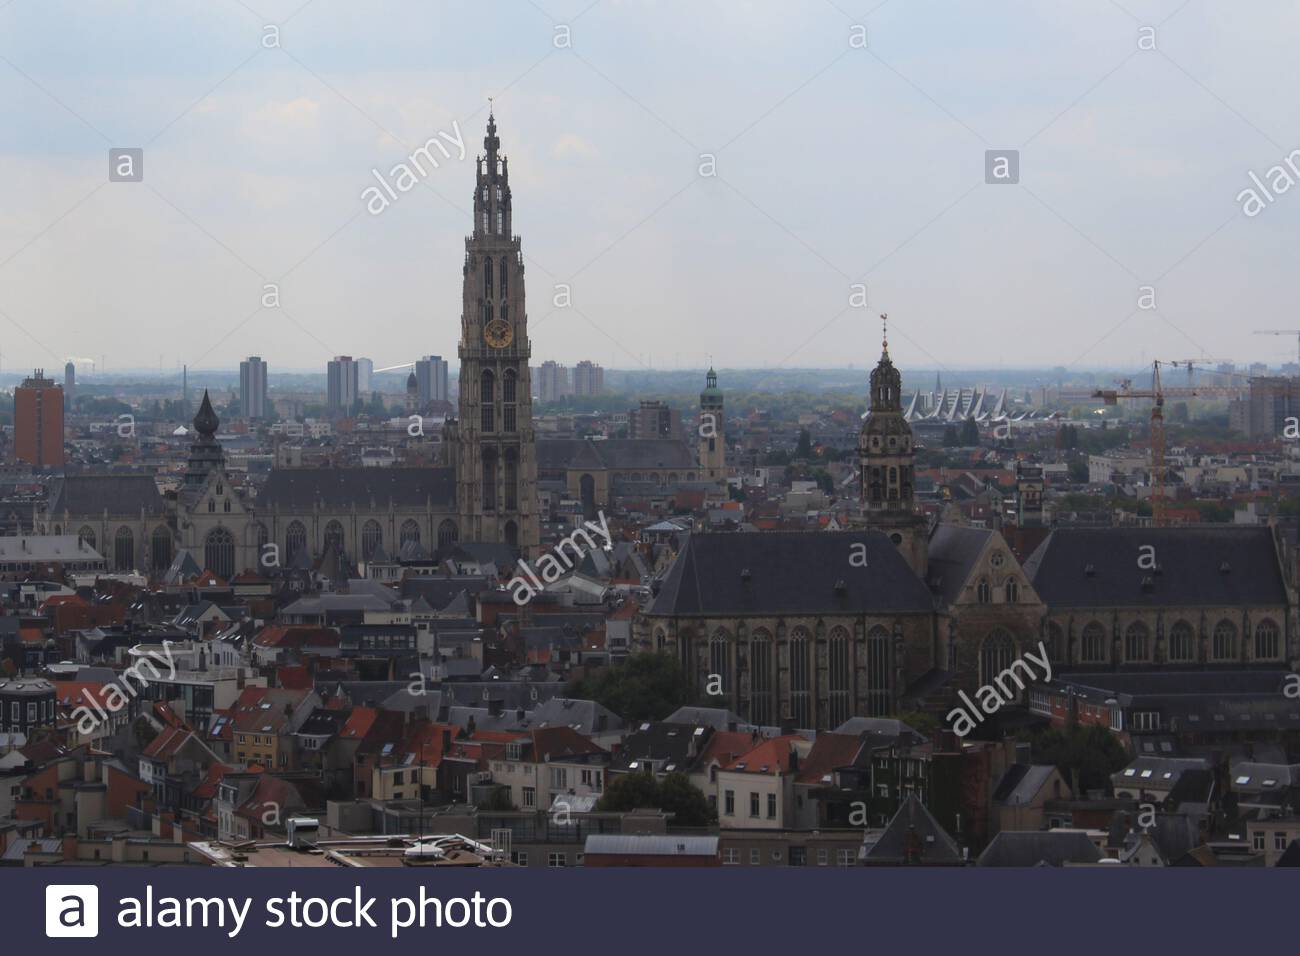 Aerial view of Antwerp, Belgium. Includes a view on the Cathedral of Our Lady Onze-Lieve-Vrouwekathedraal and the St. Paul`s Church Sint-Pauluskerk. Stock Photo